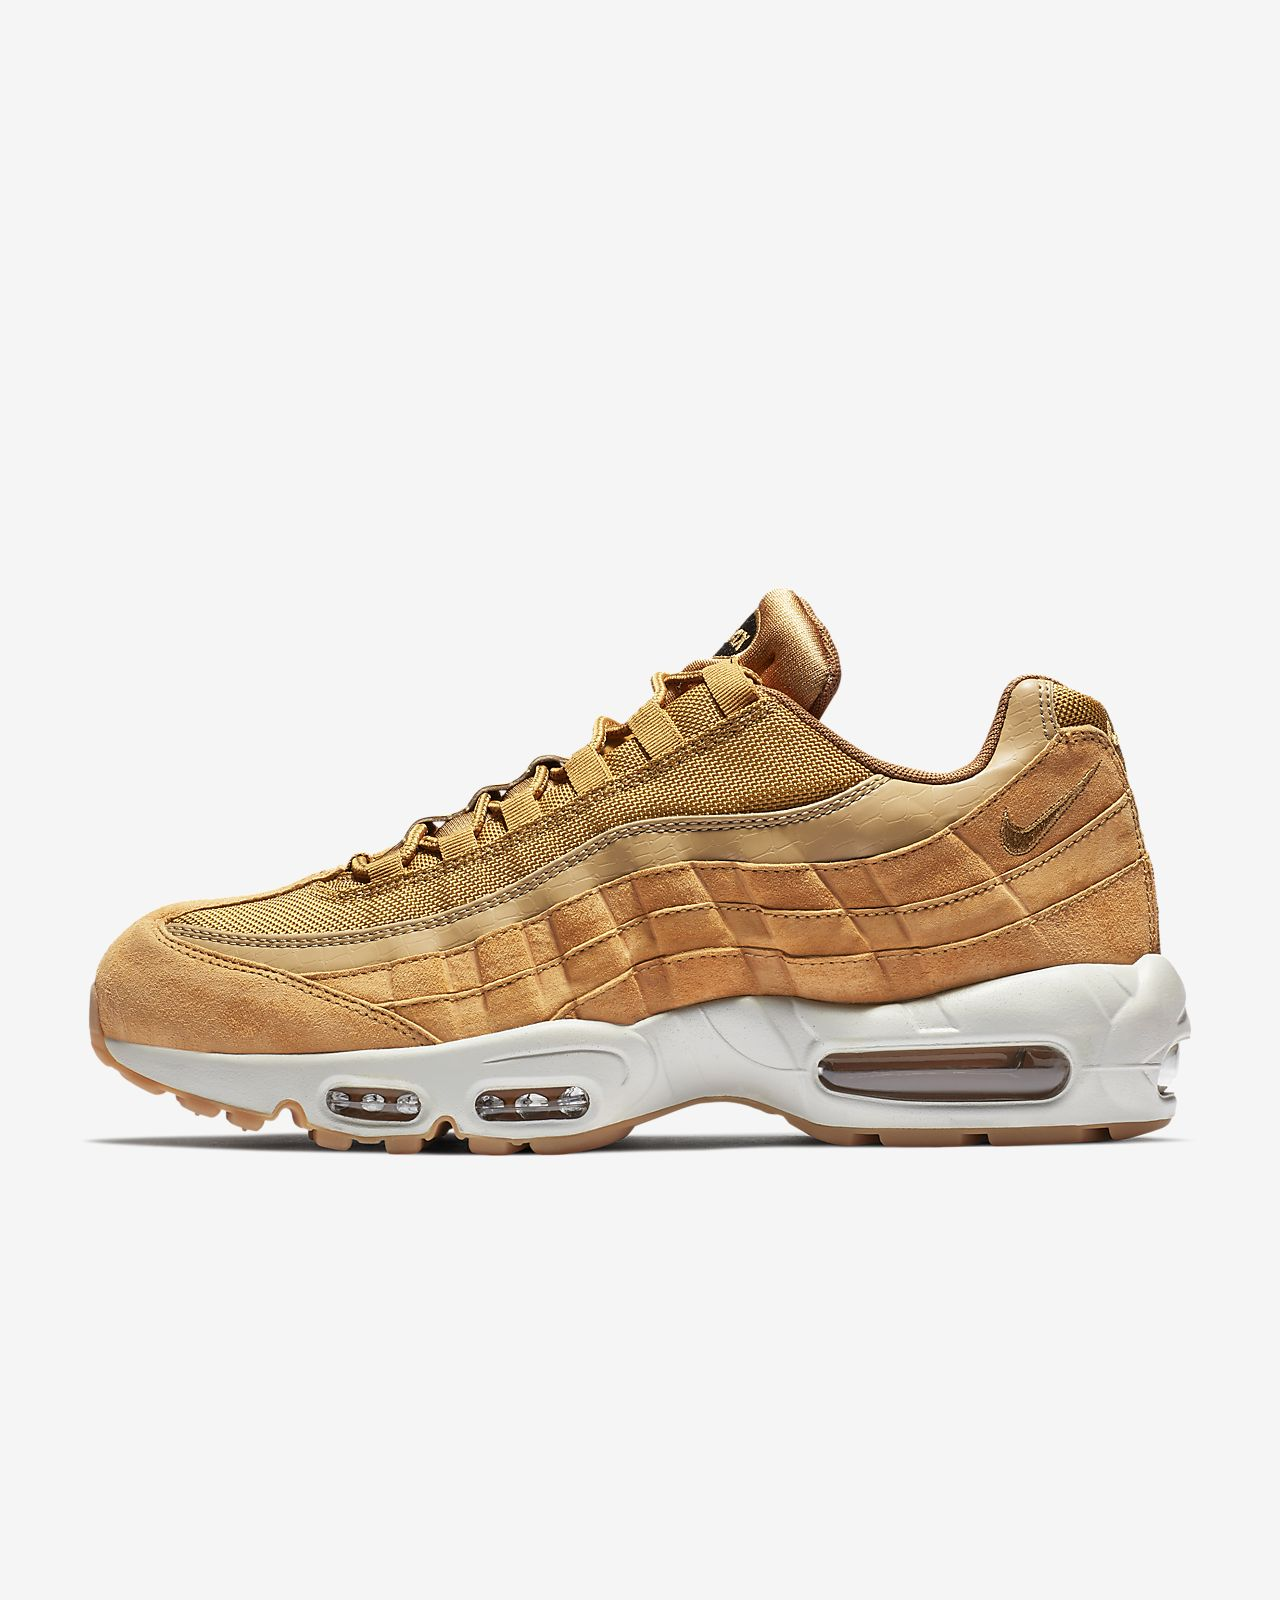 Nike Air Max 95 SE Men's Shoe